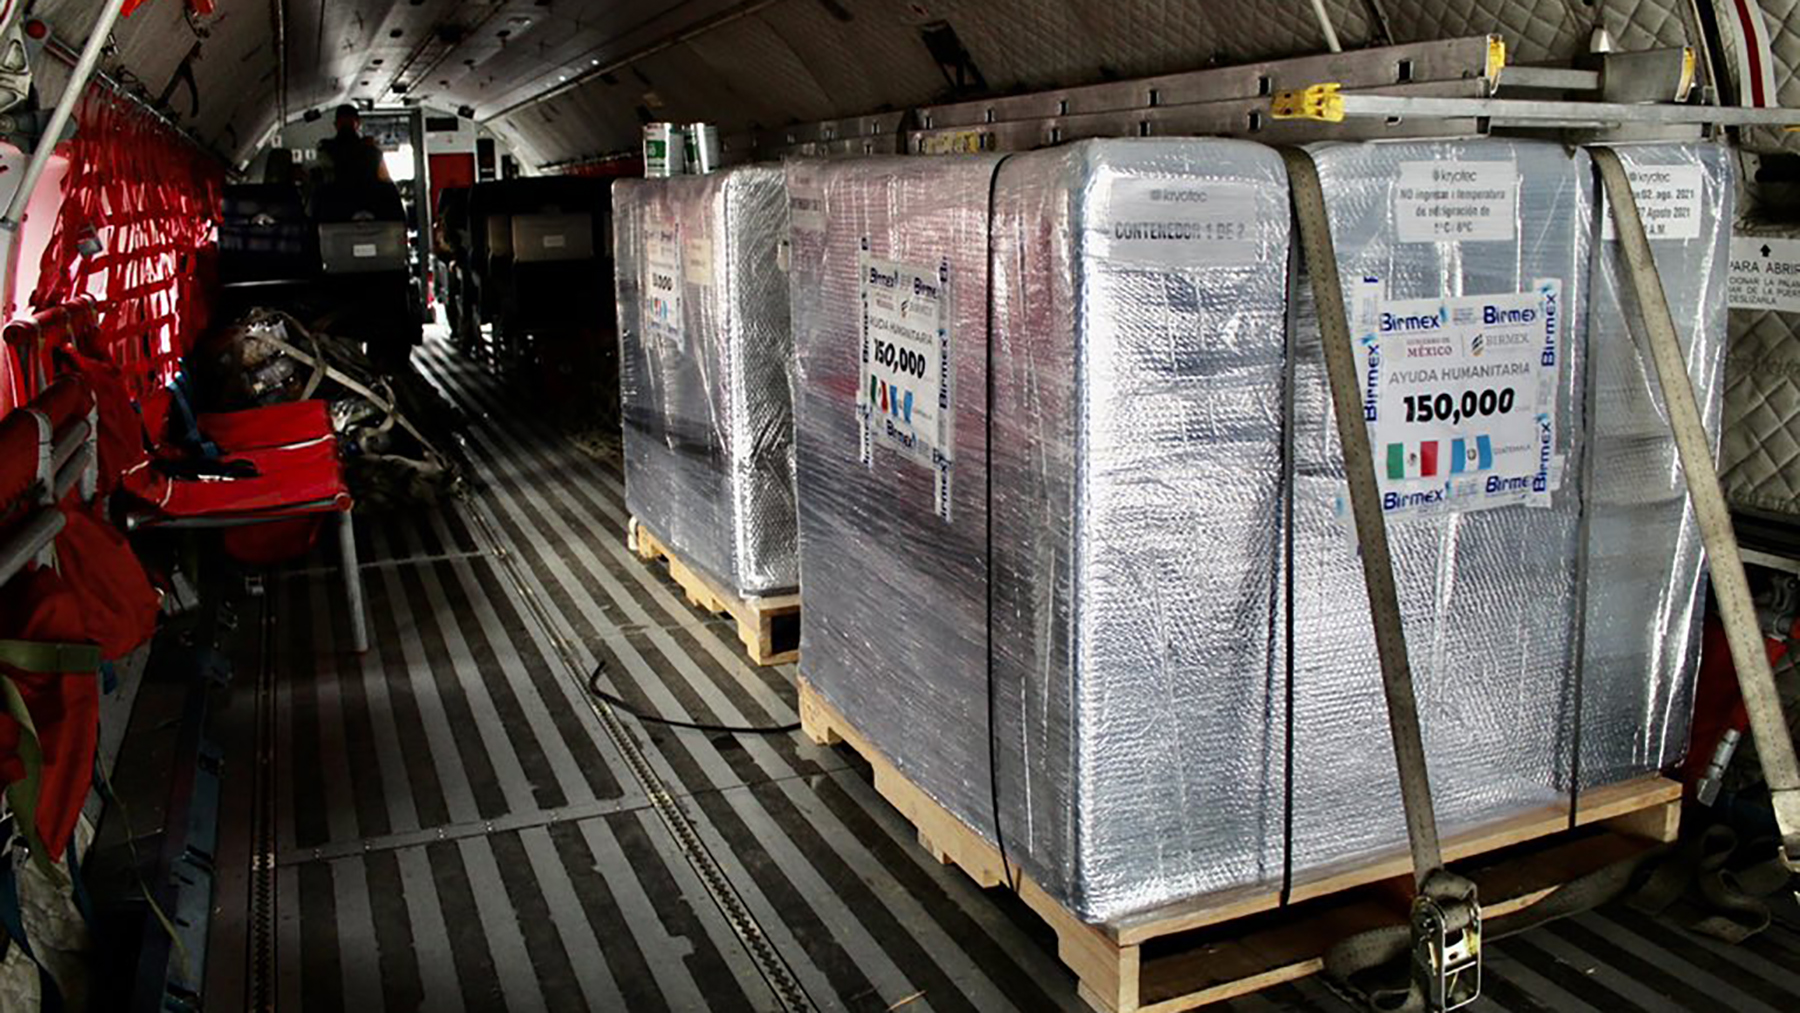 150,000 doses of AstraZeneca Covid-19 vaccines are delivered to Guatemala via the Mexican Air Force on August 3, 2021. The donation between the two governments was conducted with logistics support from Direct Relief.